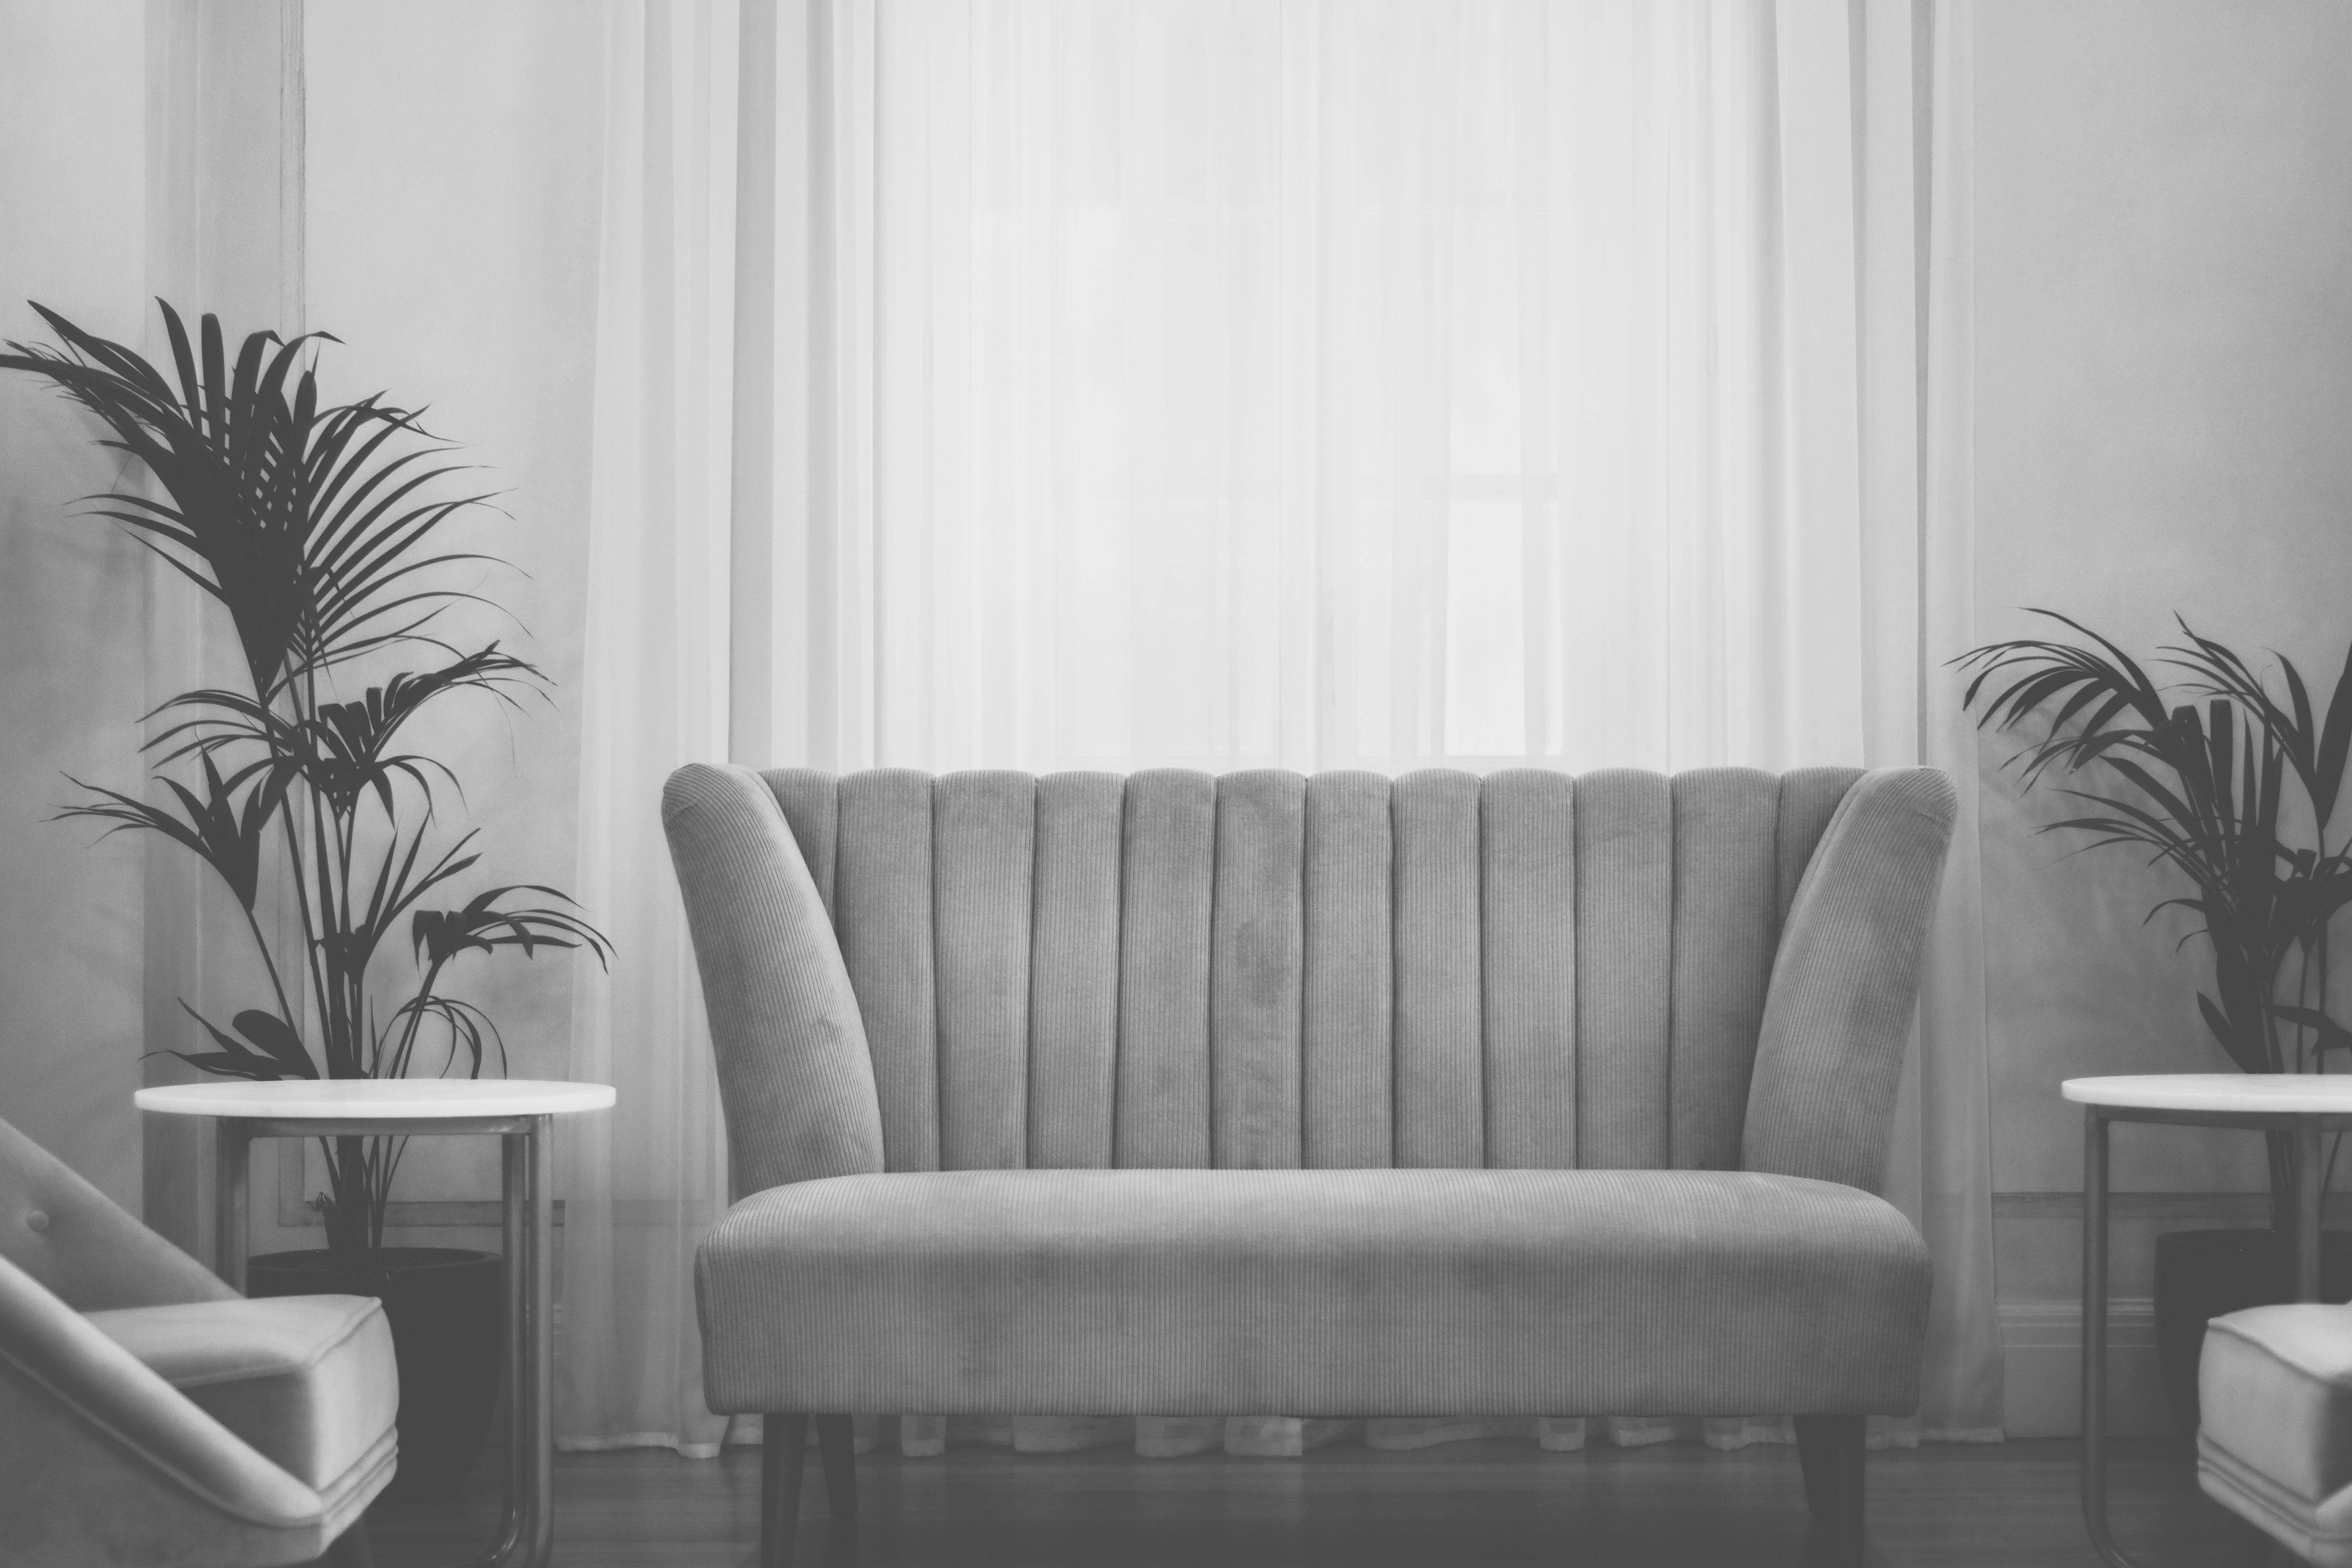 Free Images : Table, Black And White, Architecture, Chair intended for Monochrome Living Room Decorating Ideas